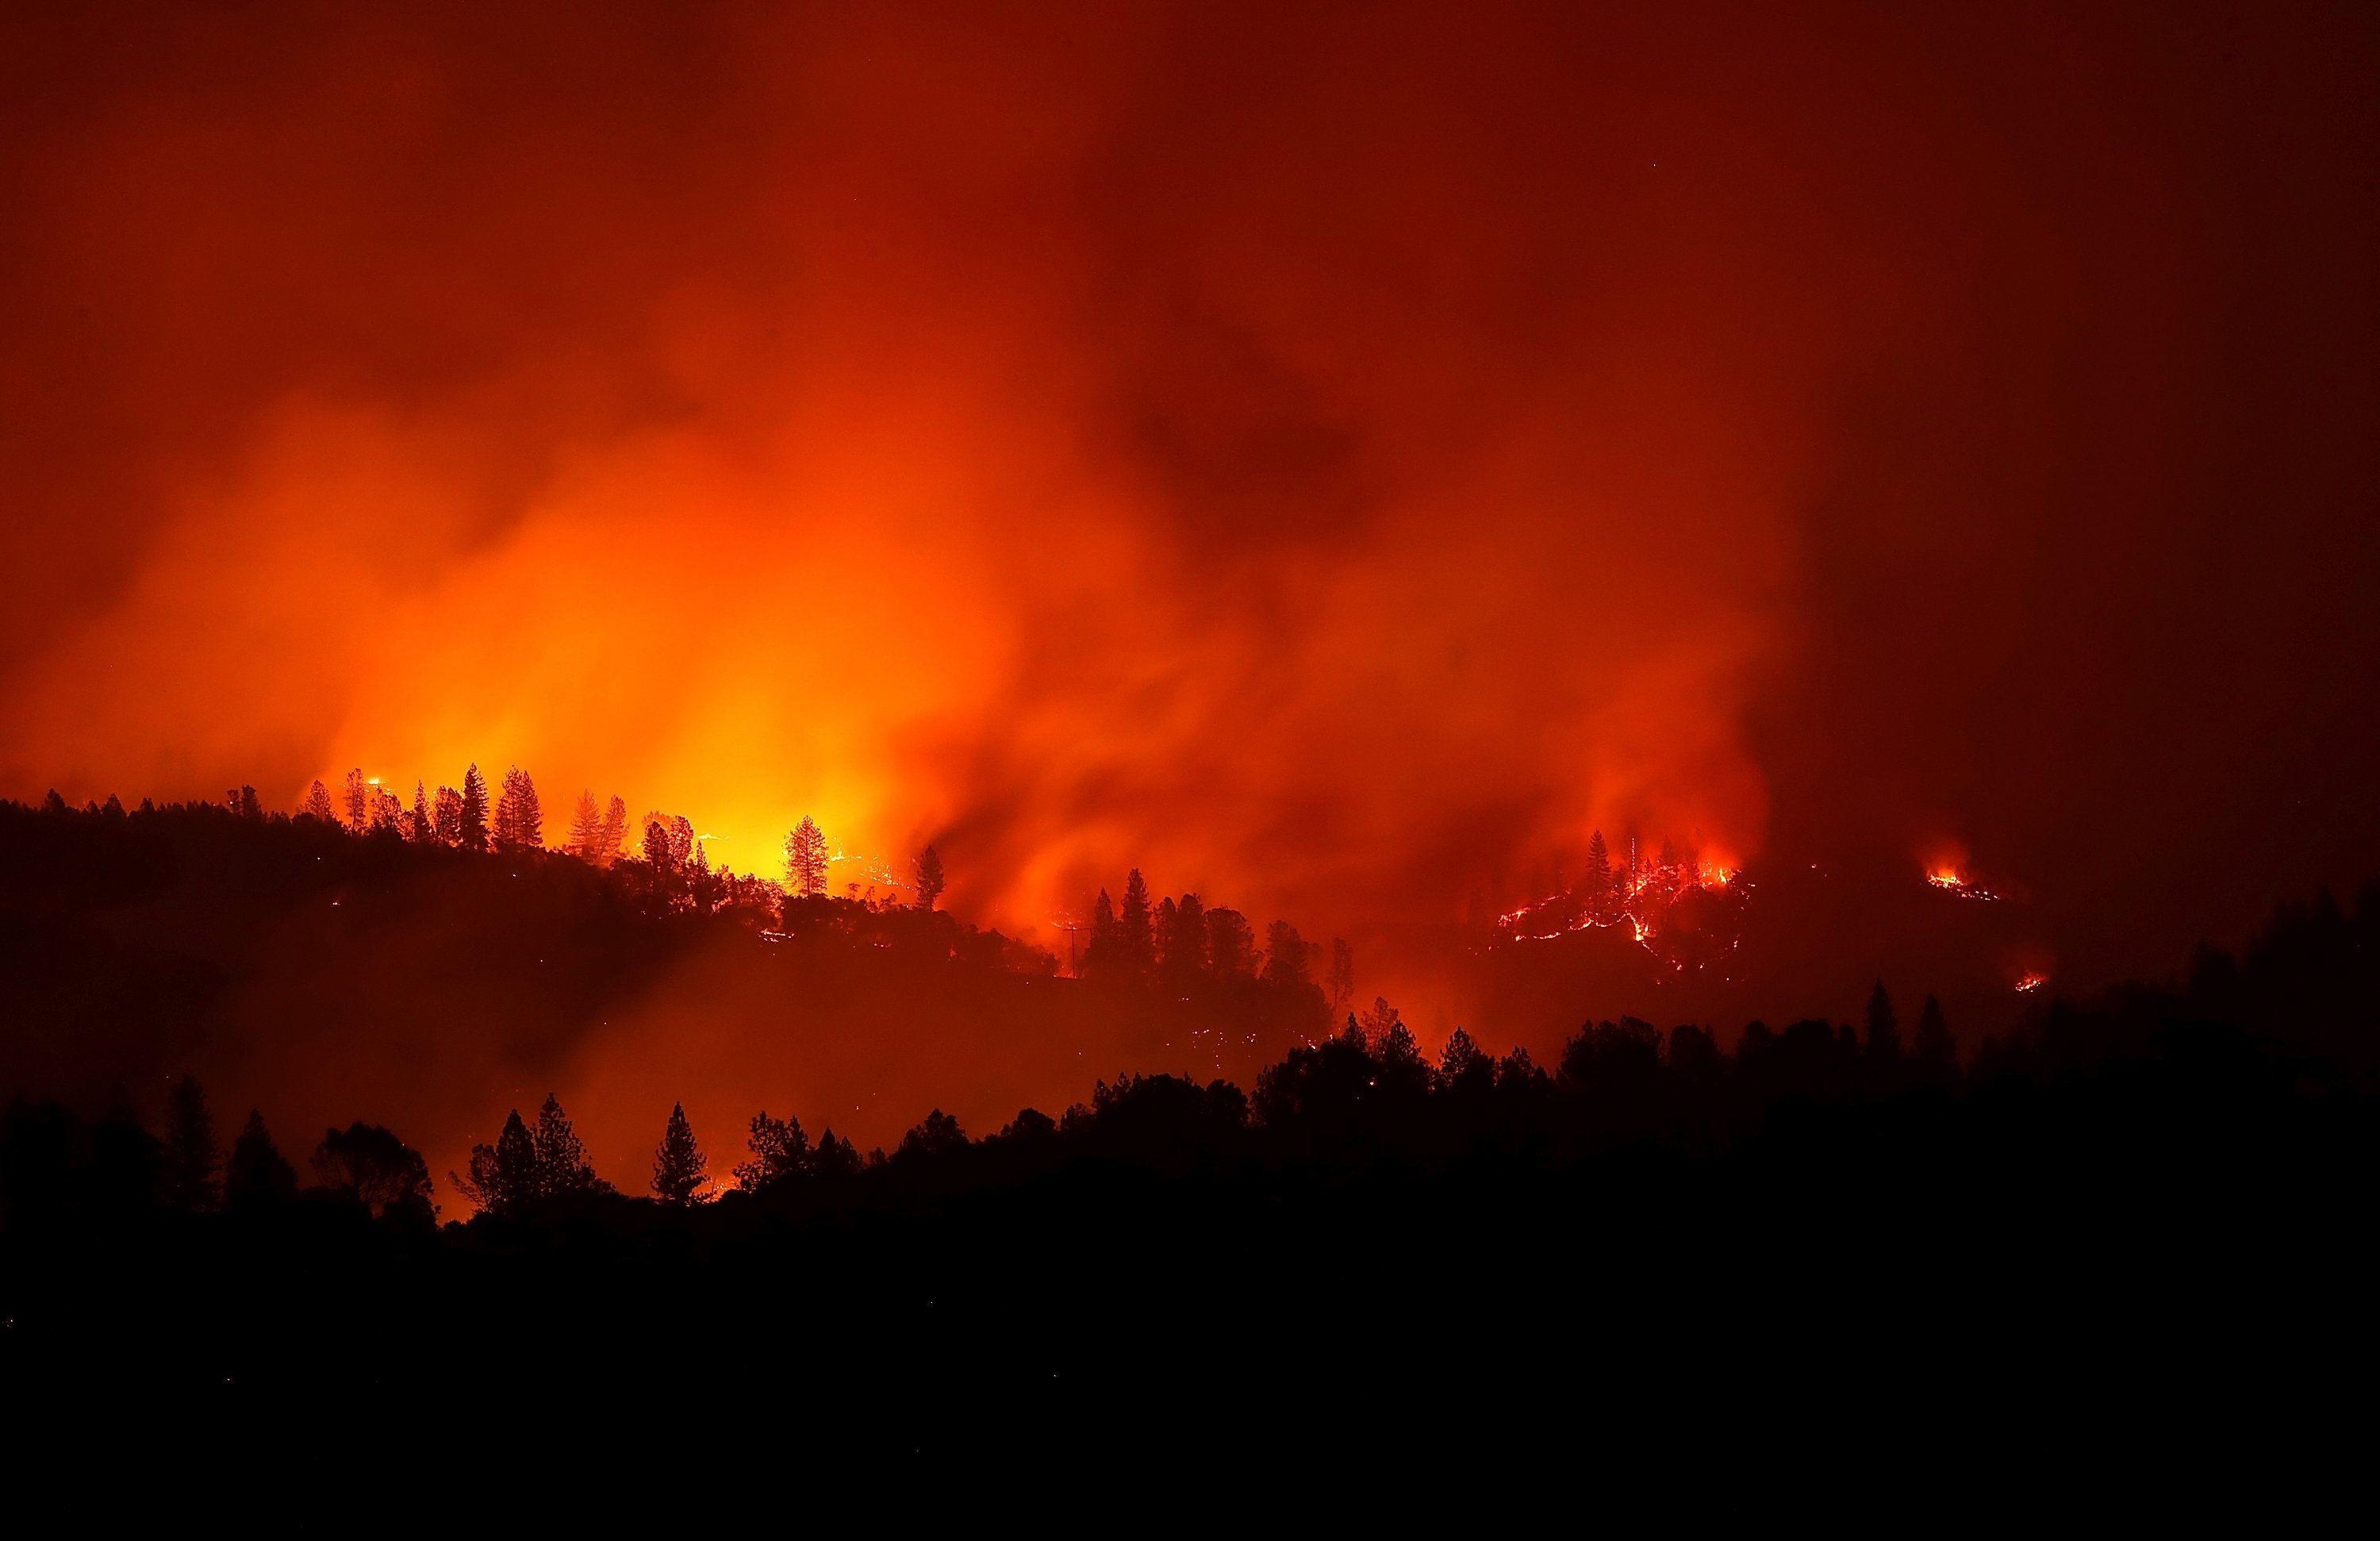 The Camp Fire Is Now The Deadliest Wildfire In California's